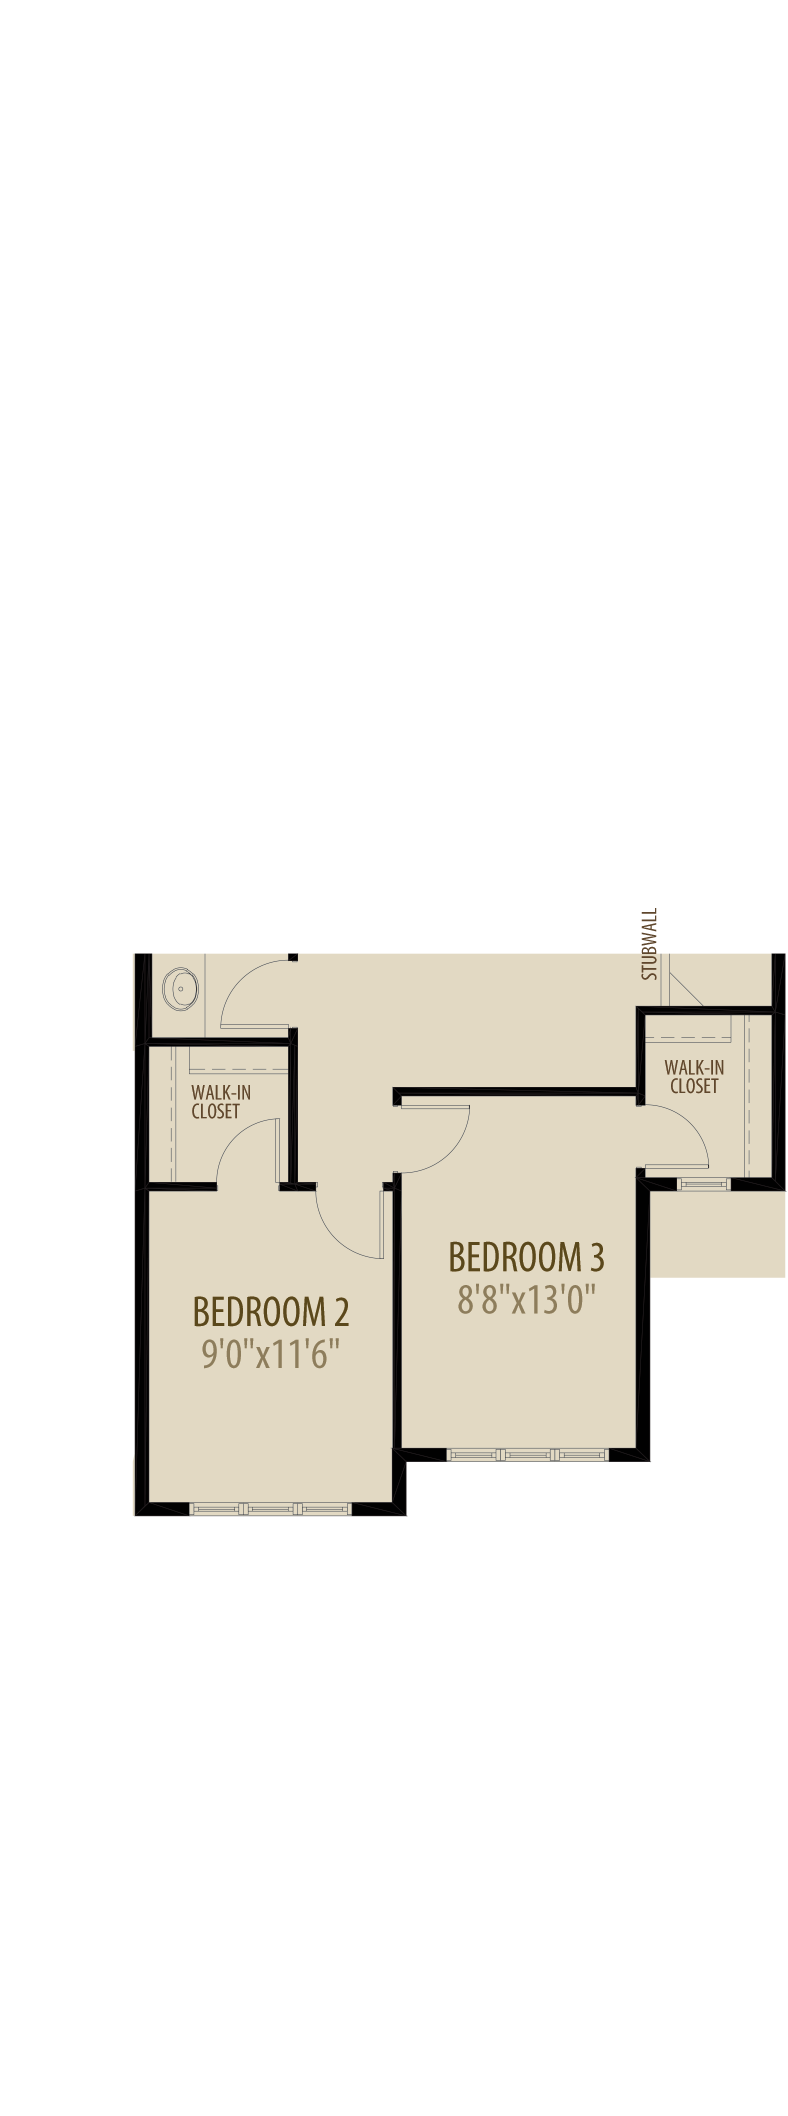 Option 3 Extended Upper Floorplan adds 57sq ft